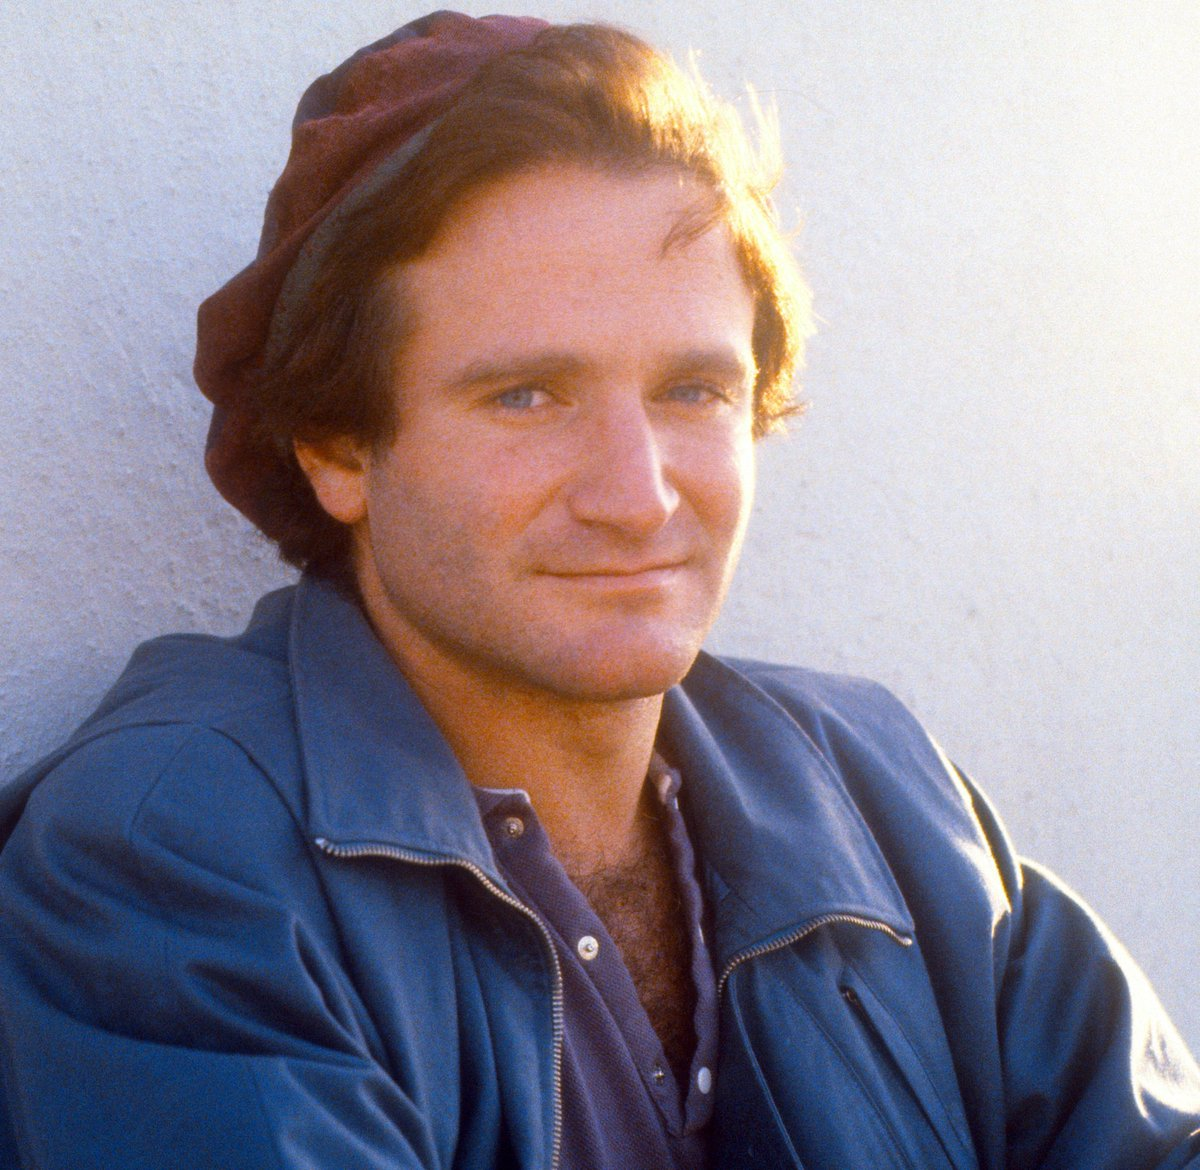 Actor/comic #RobinWilliams was #BornOnThisDay, July 21, 1951. He won 1 #AcademyAward, 2 #EmmyAwards, 6 #GoldenGlobe & 4 #GrammyAwards. Troubled by #depression, #anxiety, #paranoia & signs of #dementia, in 2014 he passed (age 63) of #suicide (hanging) #RIP #SuicideAwareness #help<br>http://pic.twitter.com/dv85z1HJ5b